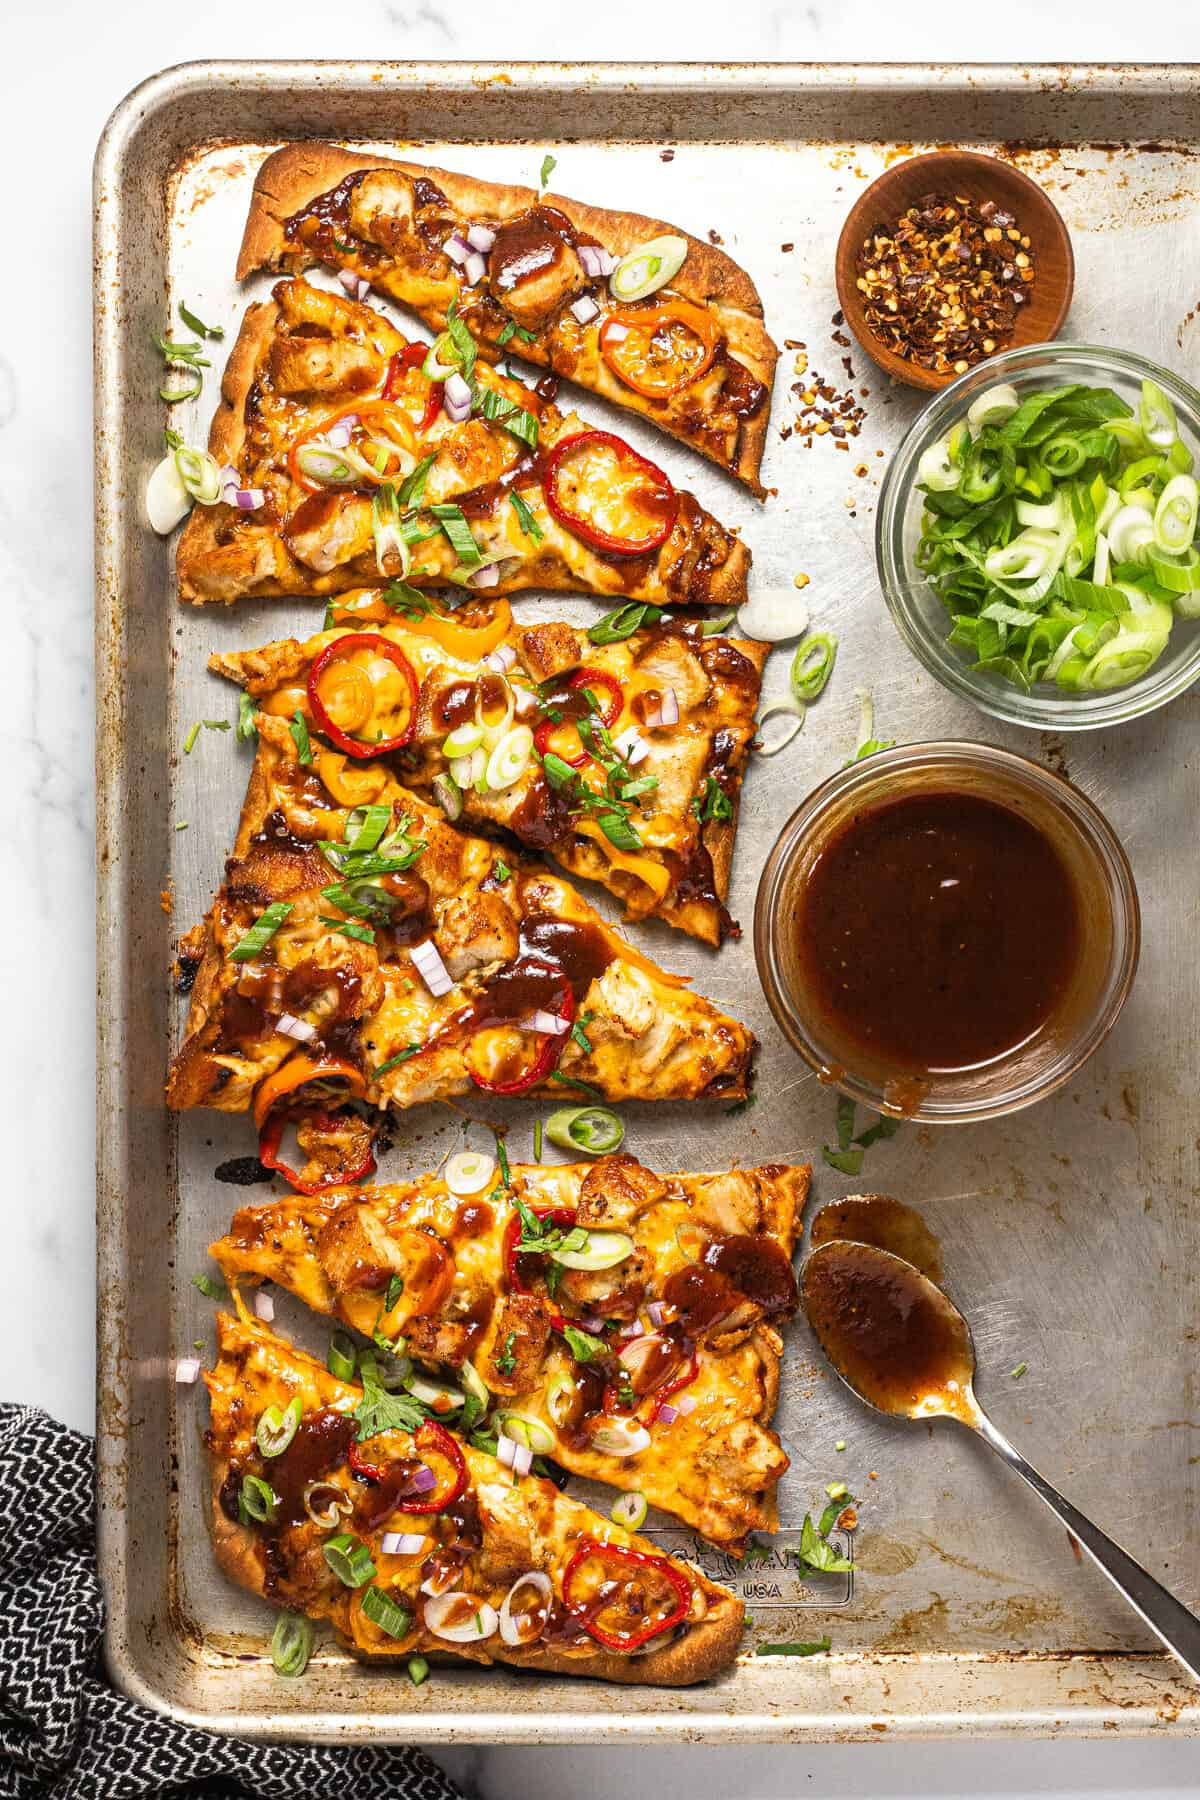 Baking sheet with a BBQ chicken flatbread garnished with sliced green onion